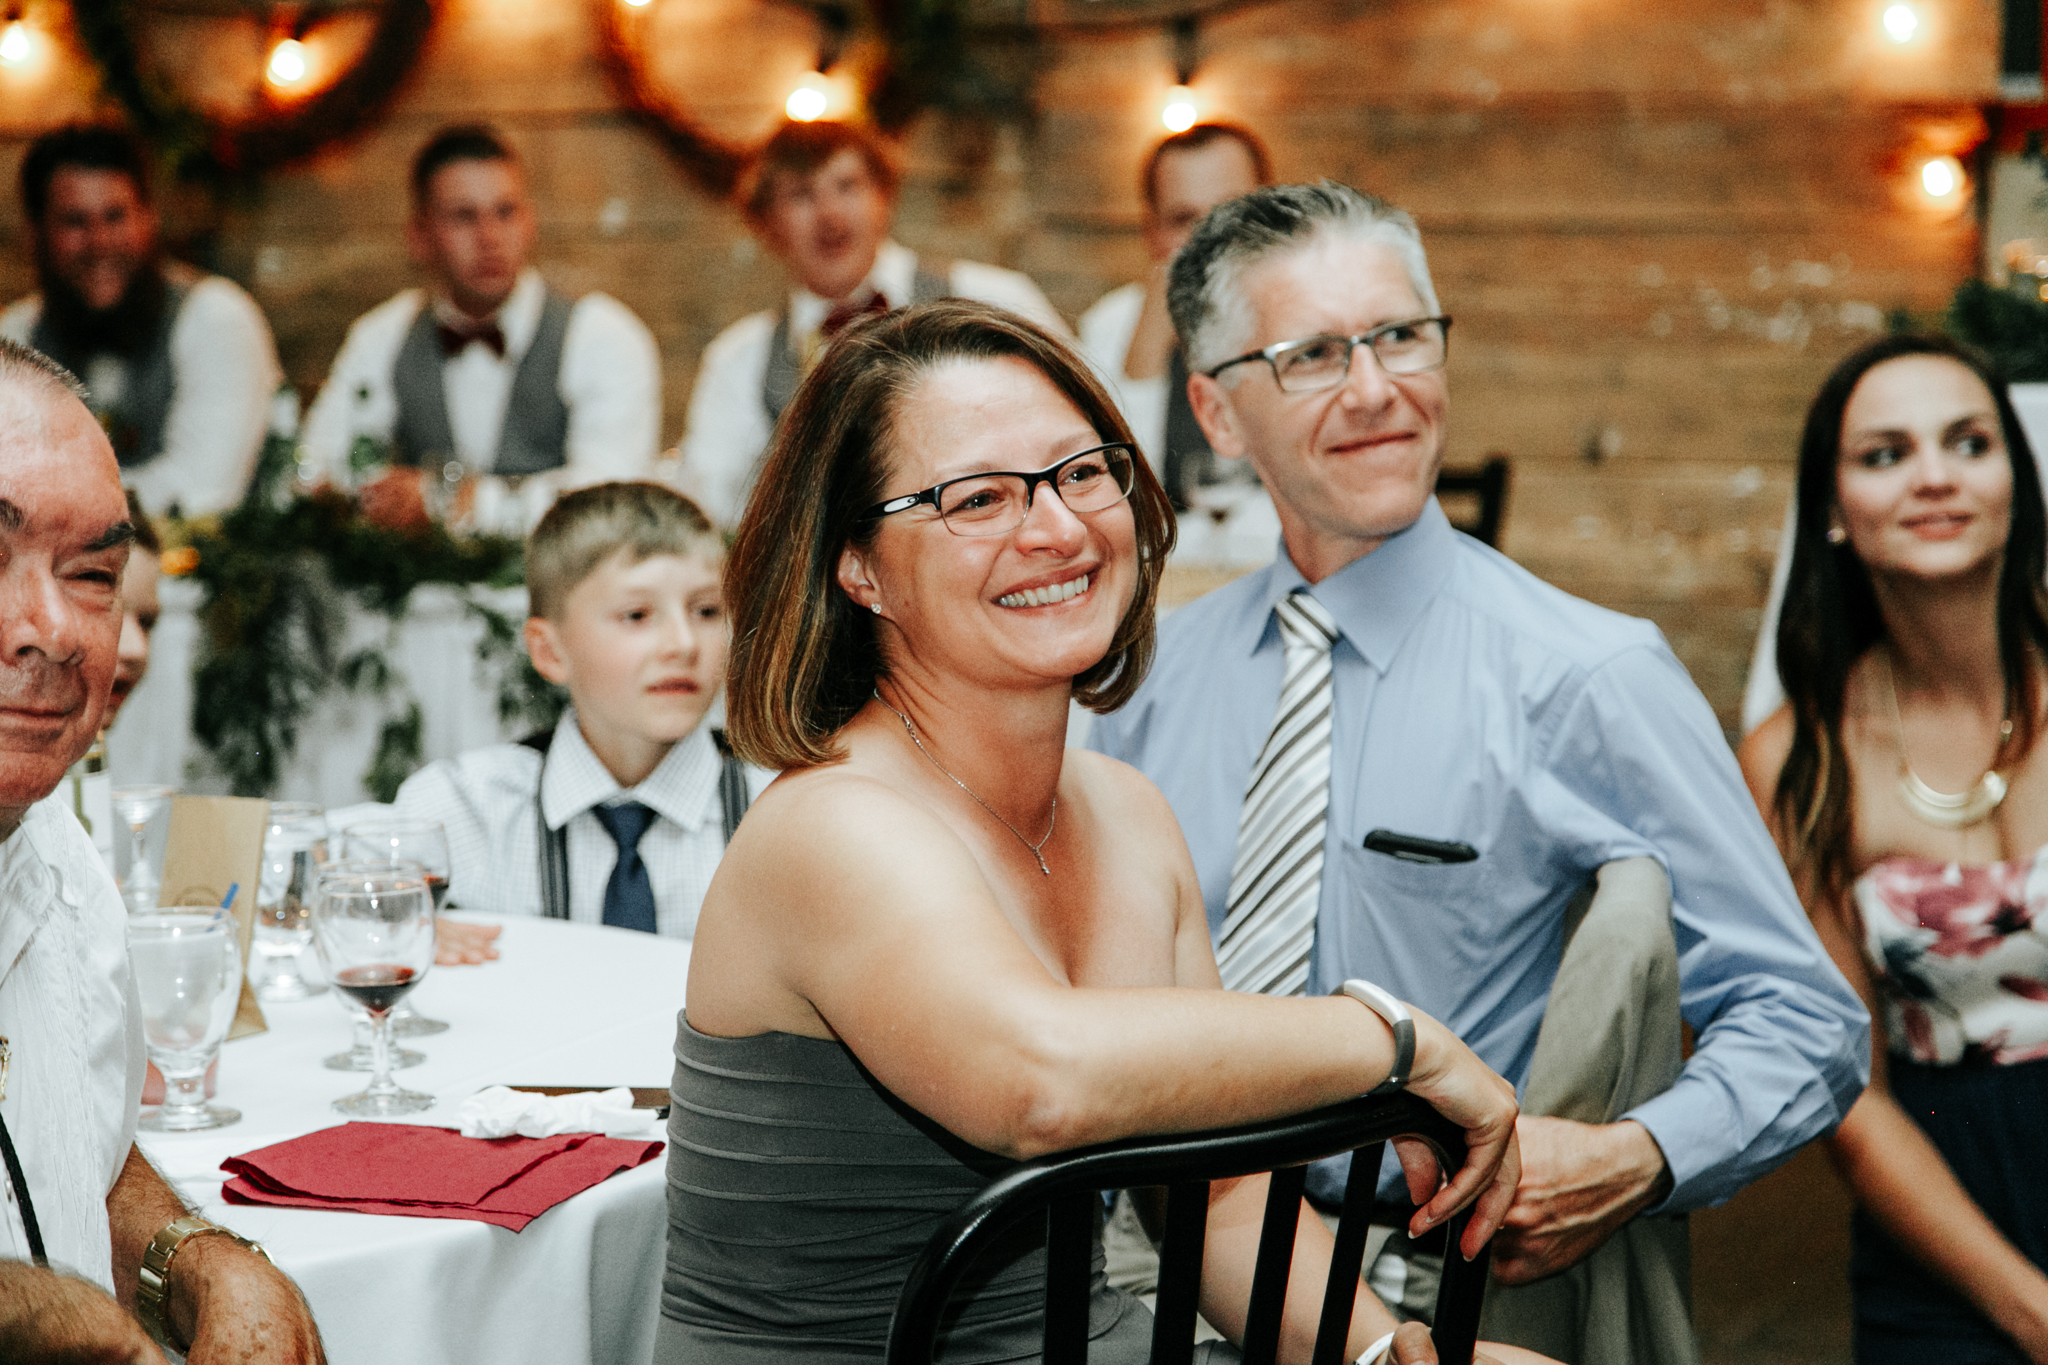 castle-mountain-wedding-photographer-love-and-be-loved-photography-lethbridge-pincher-creek-crowsnest-pass-yannick-rylee-photo-image-picture-155196.jpg